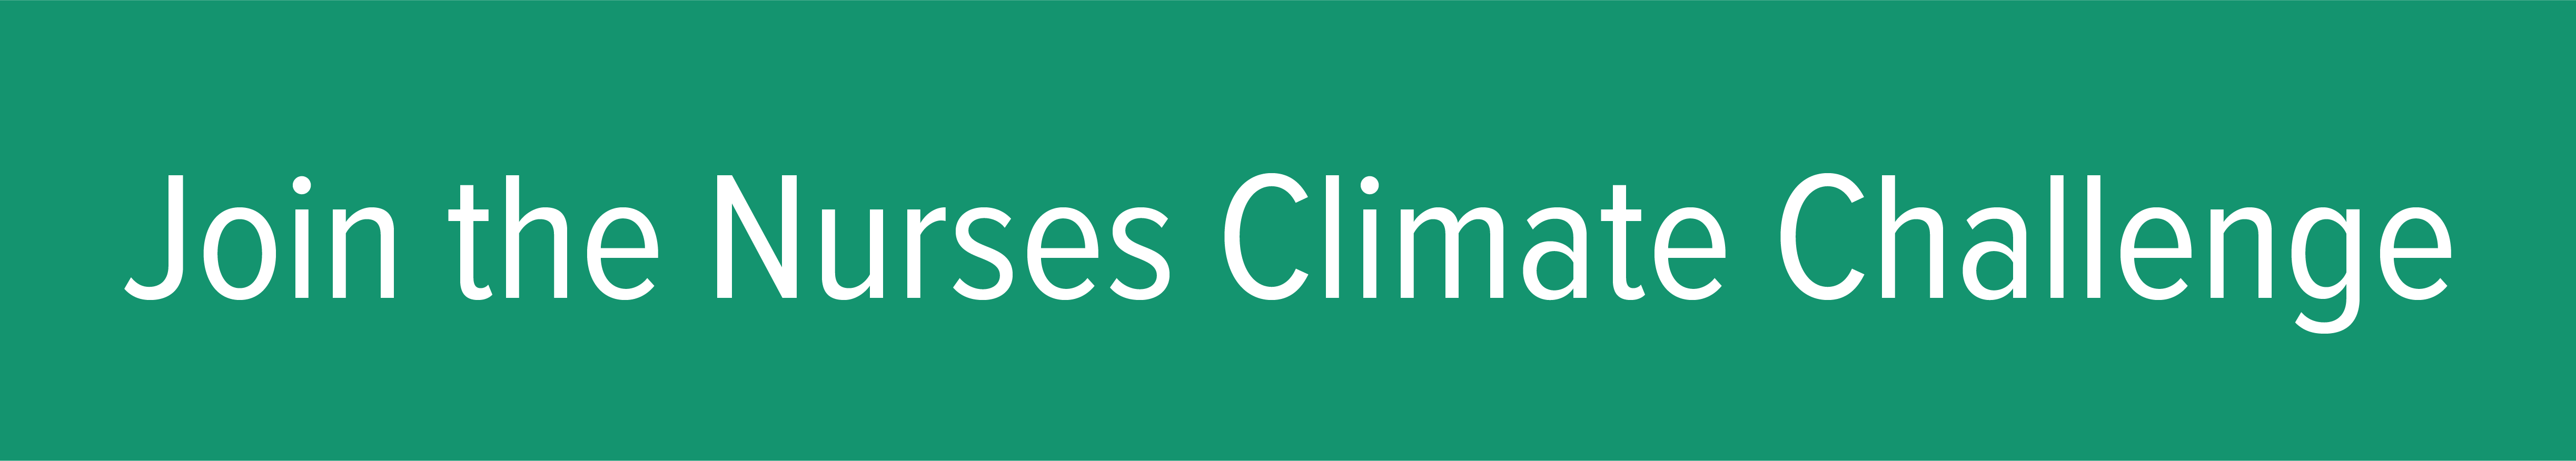 Join the Nurses Climate Challenge